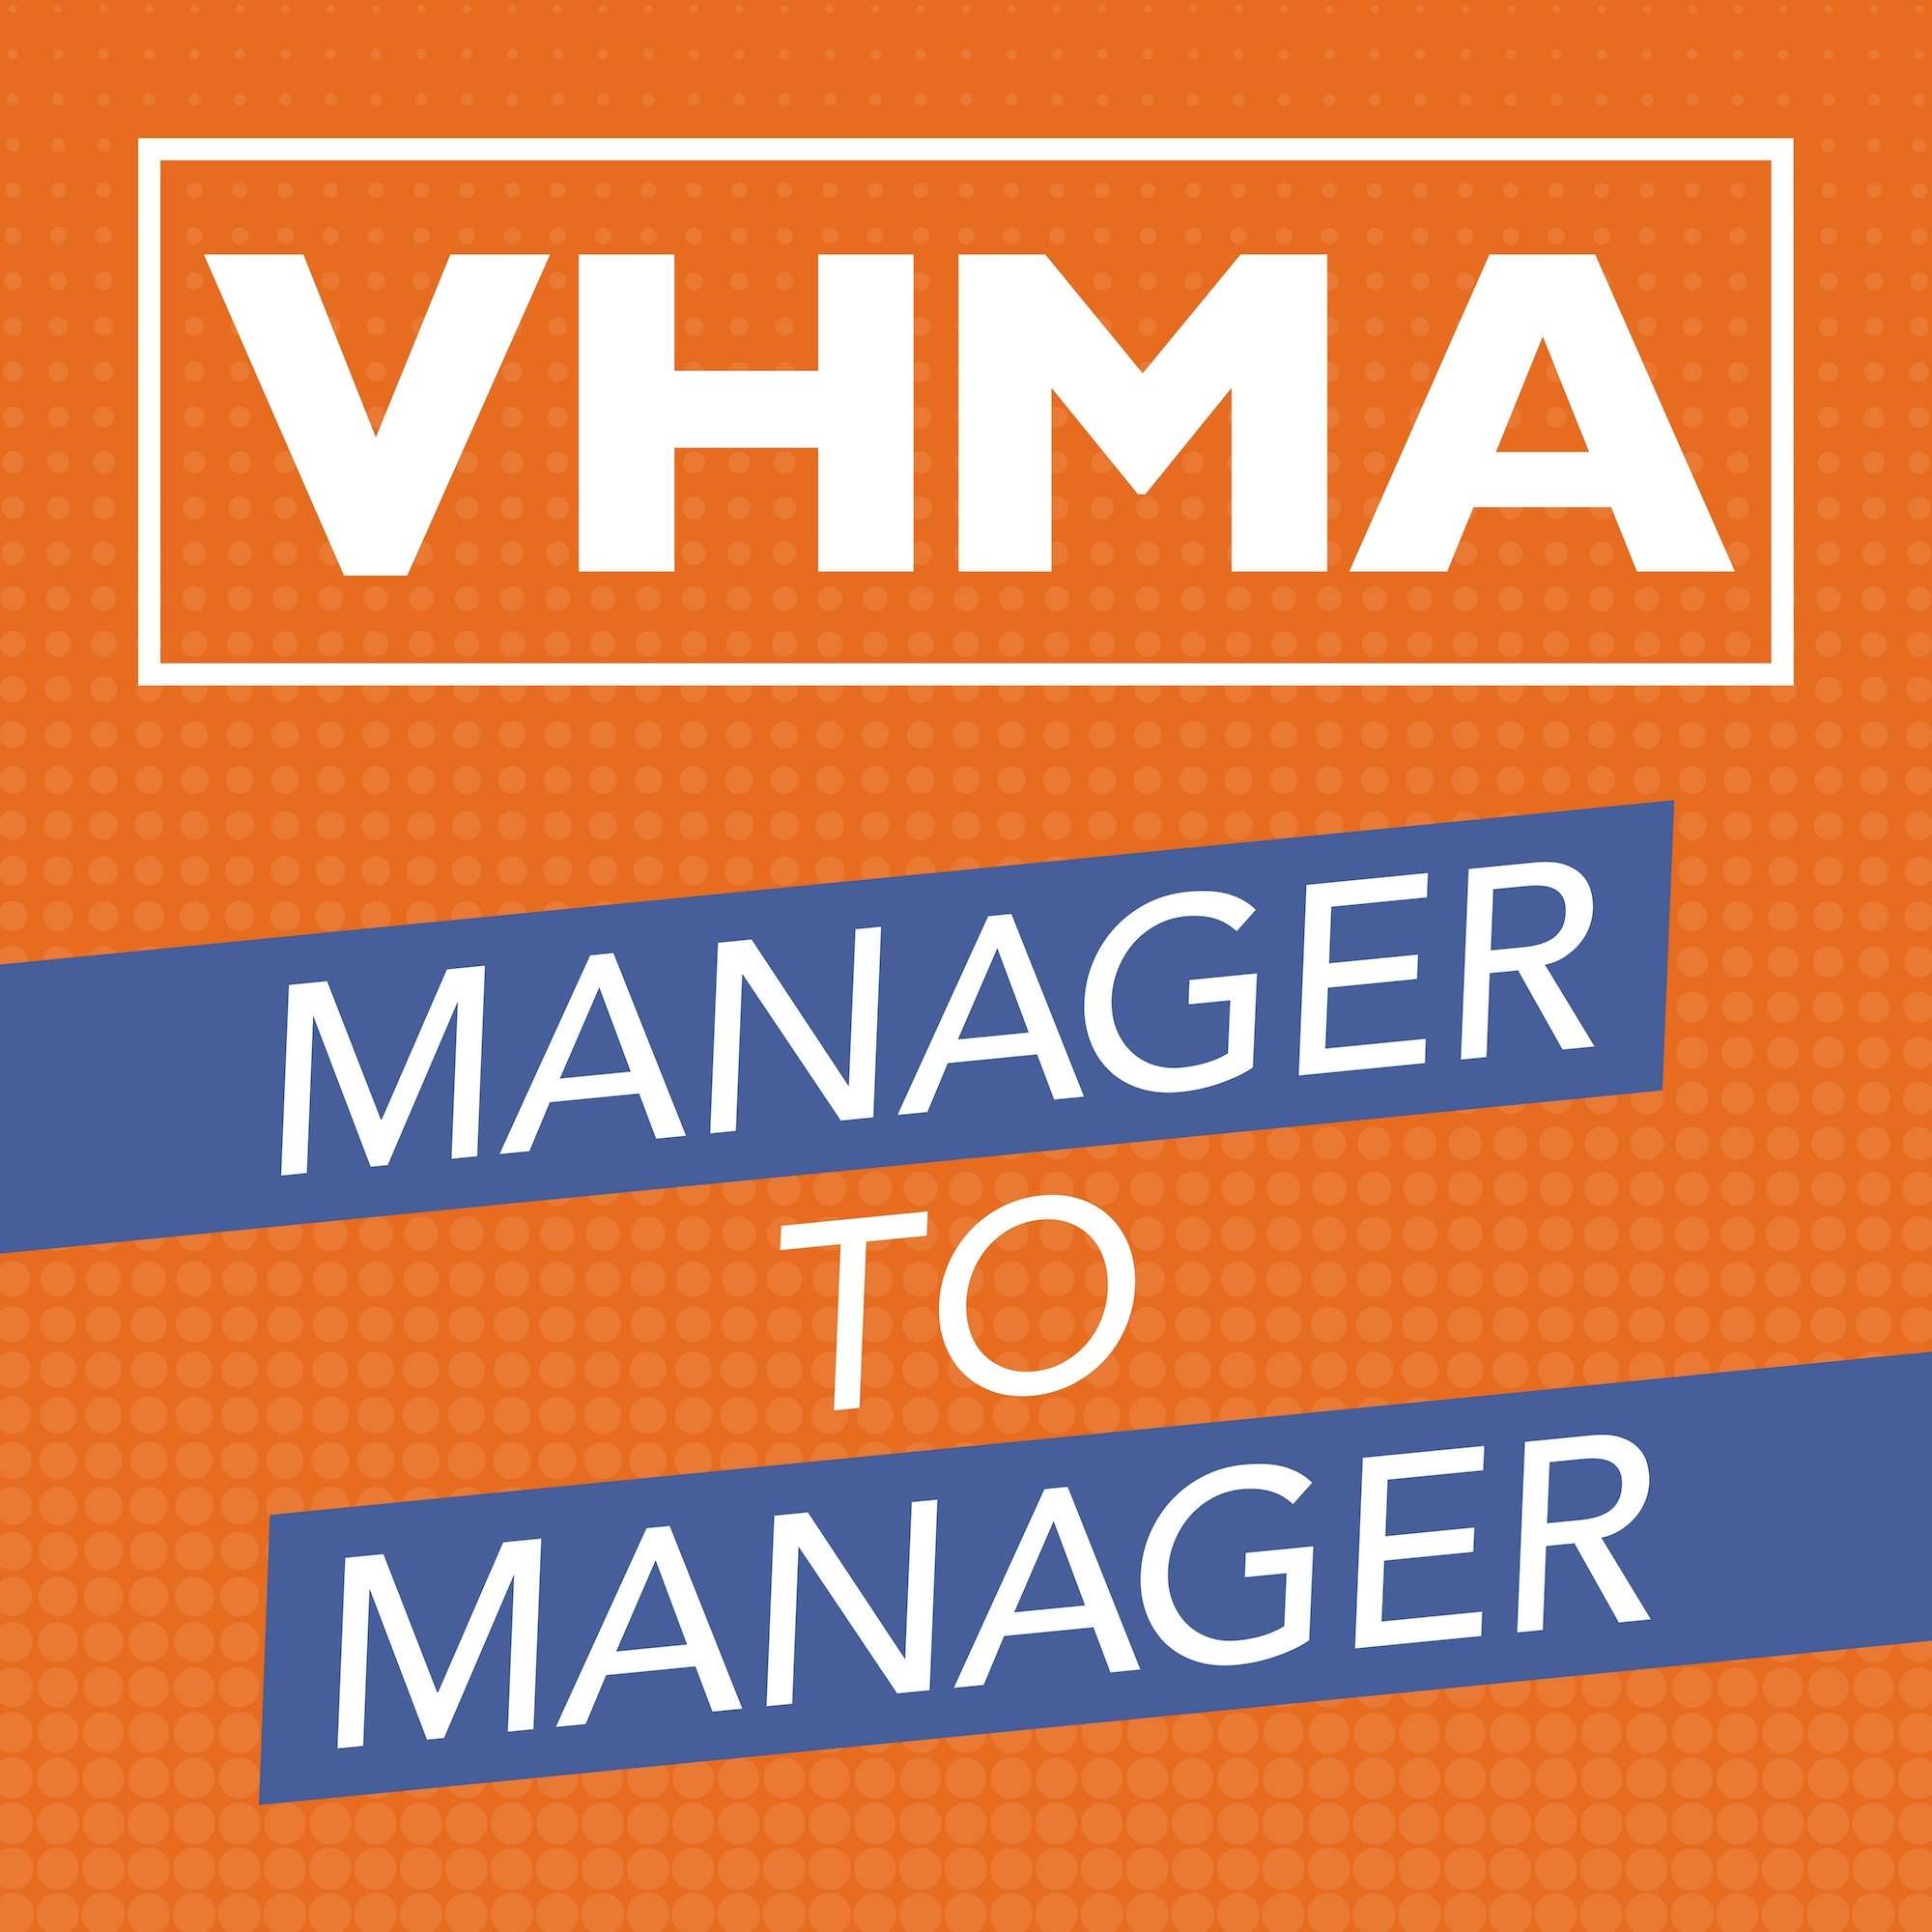 VHMA Manager to Manager